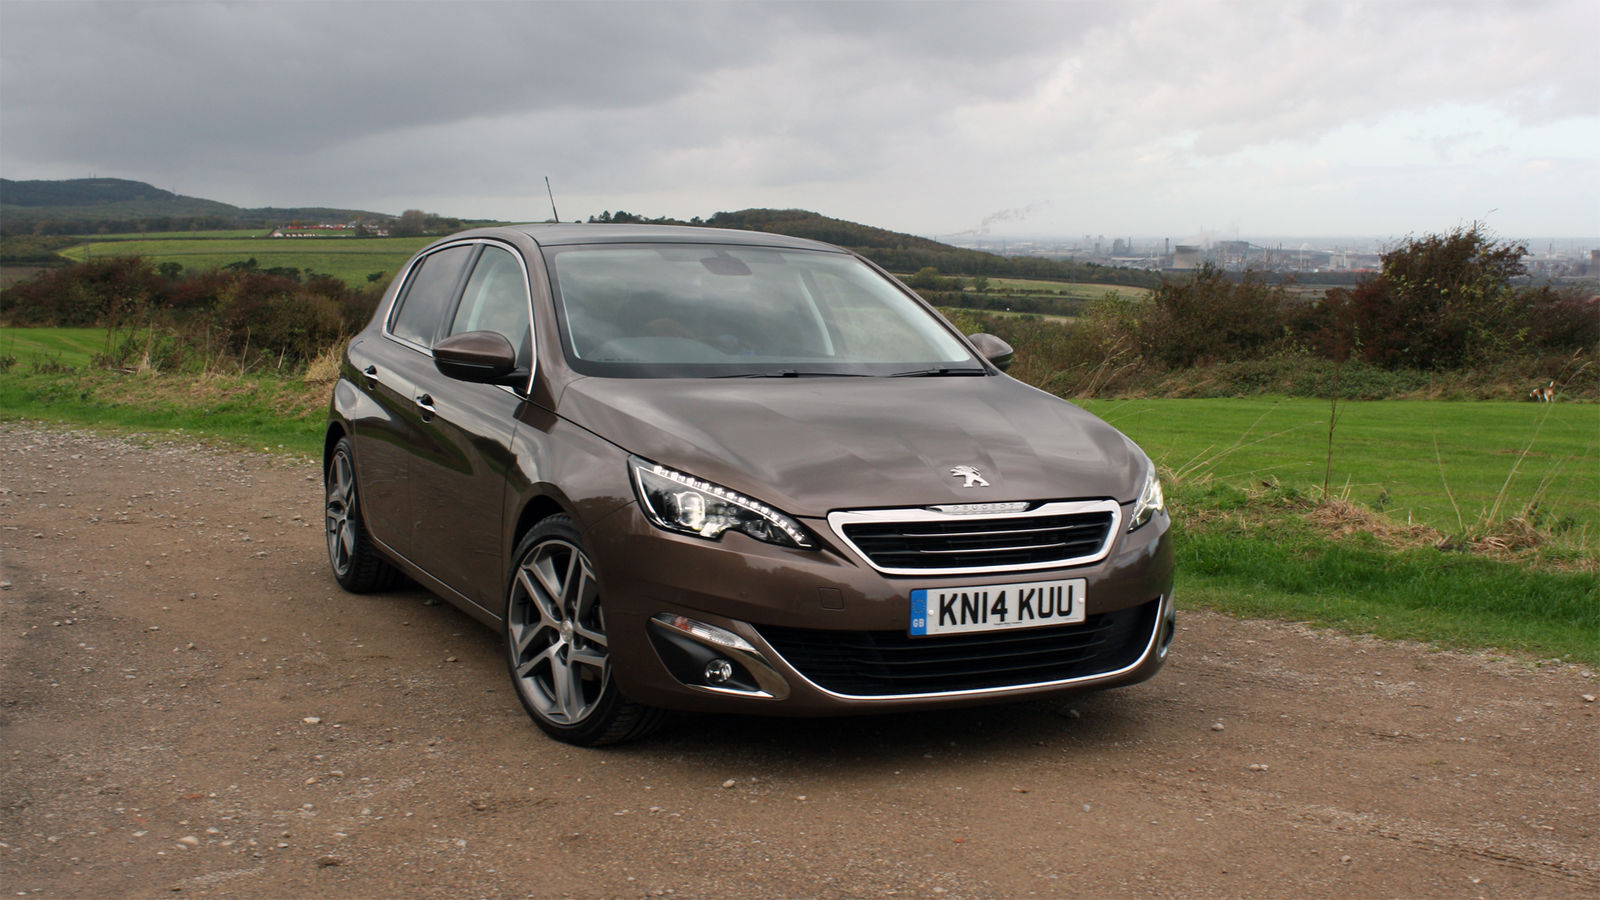 2015 peugeot 308 1 2 uk road test review carwow. Black Bedroom Furniture Sets. Home Design Ideas